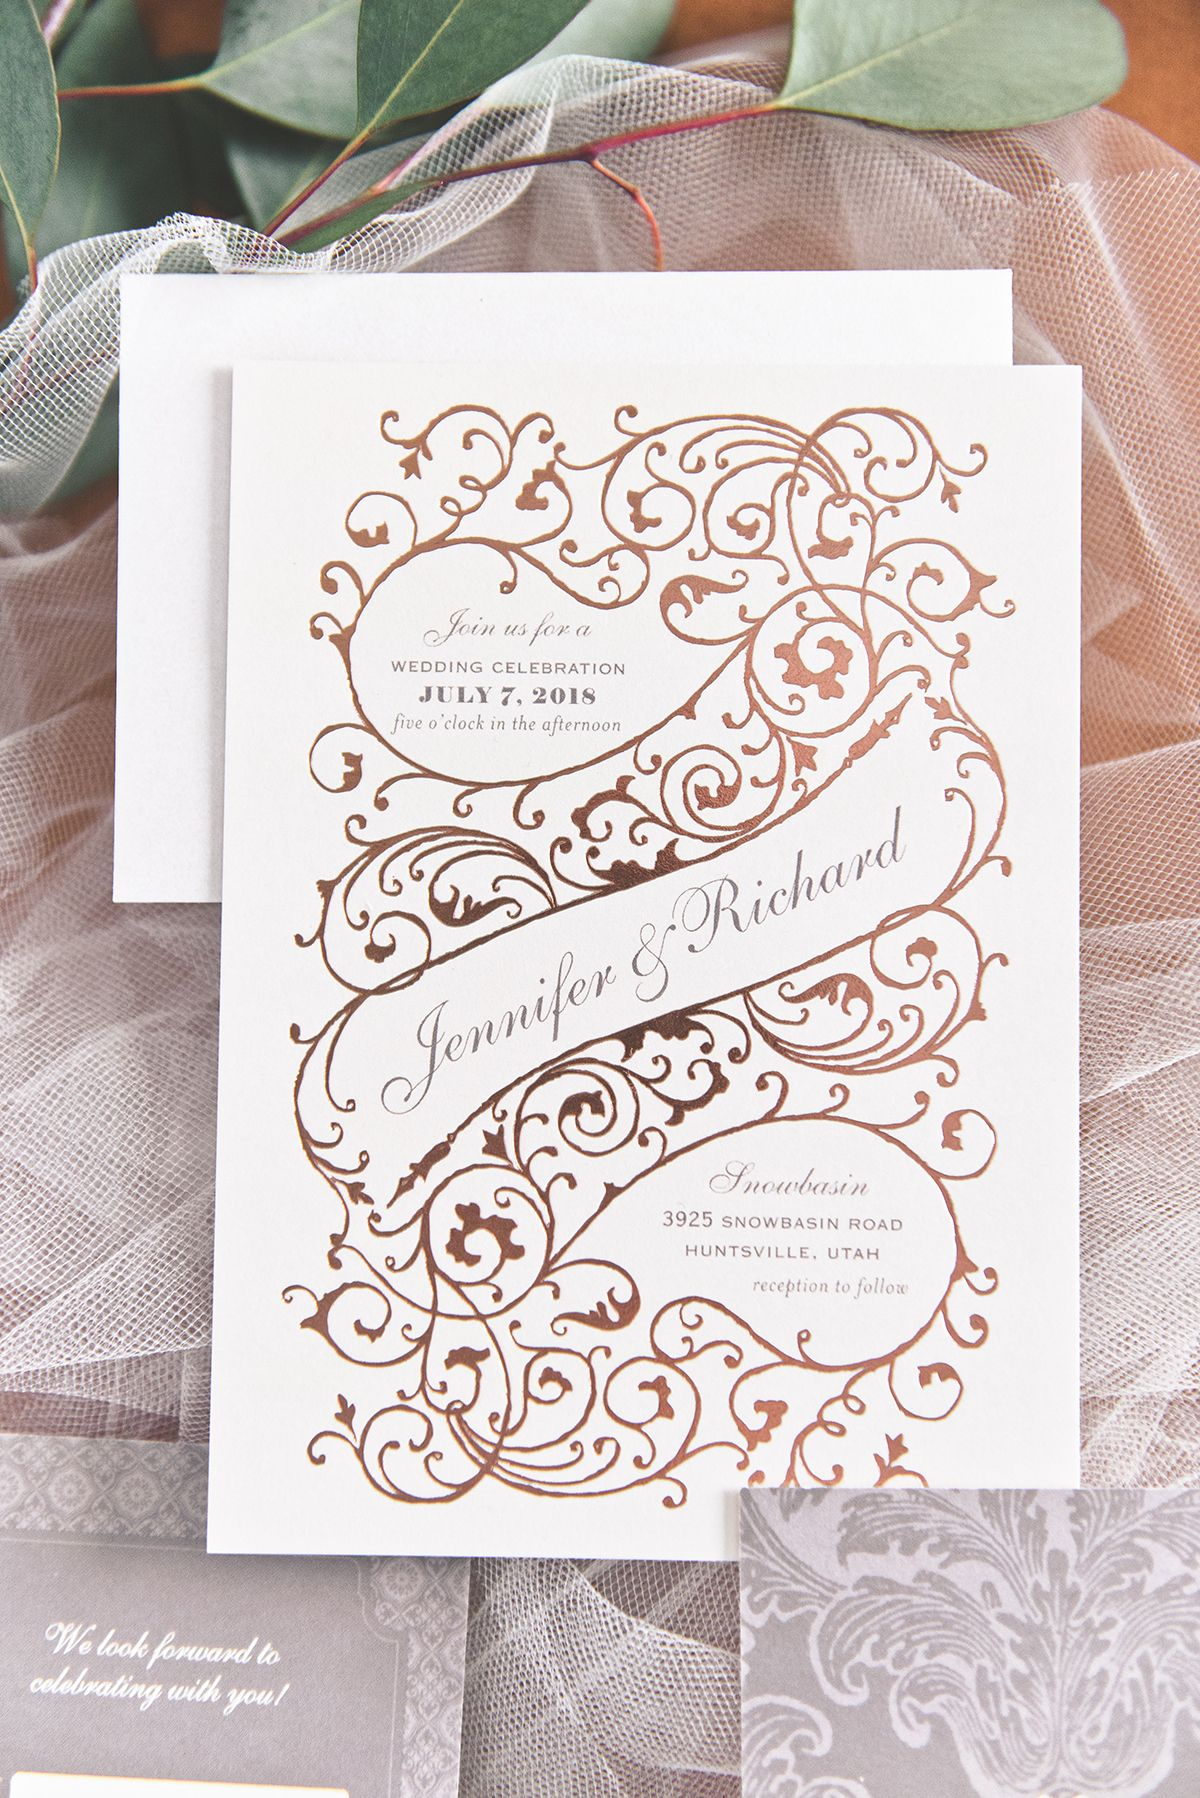 Dreamy Wedding Invitations From Wedding Paper Divas Glamour Grace Dreamy Wedding Invitations Wedding Paper Divas Wedding Invitations